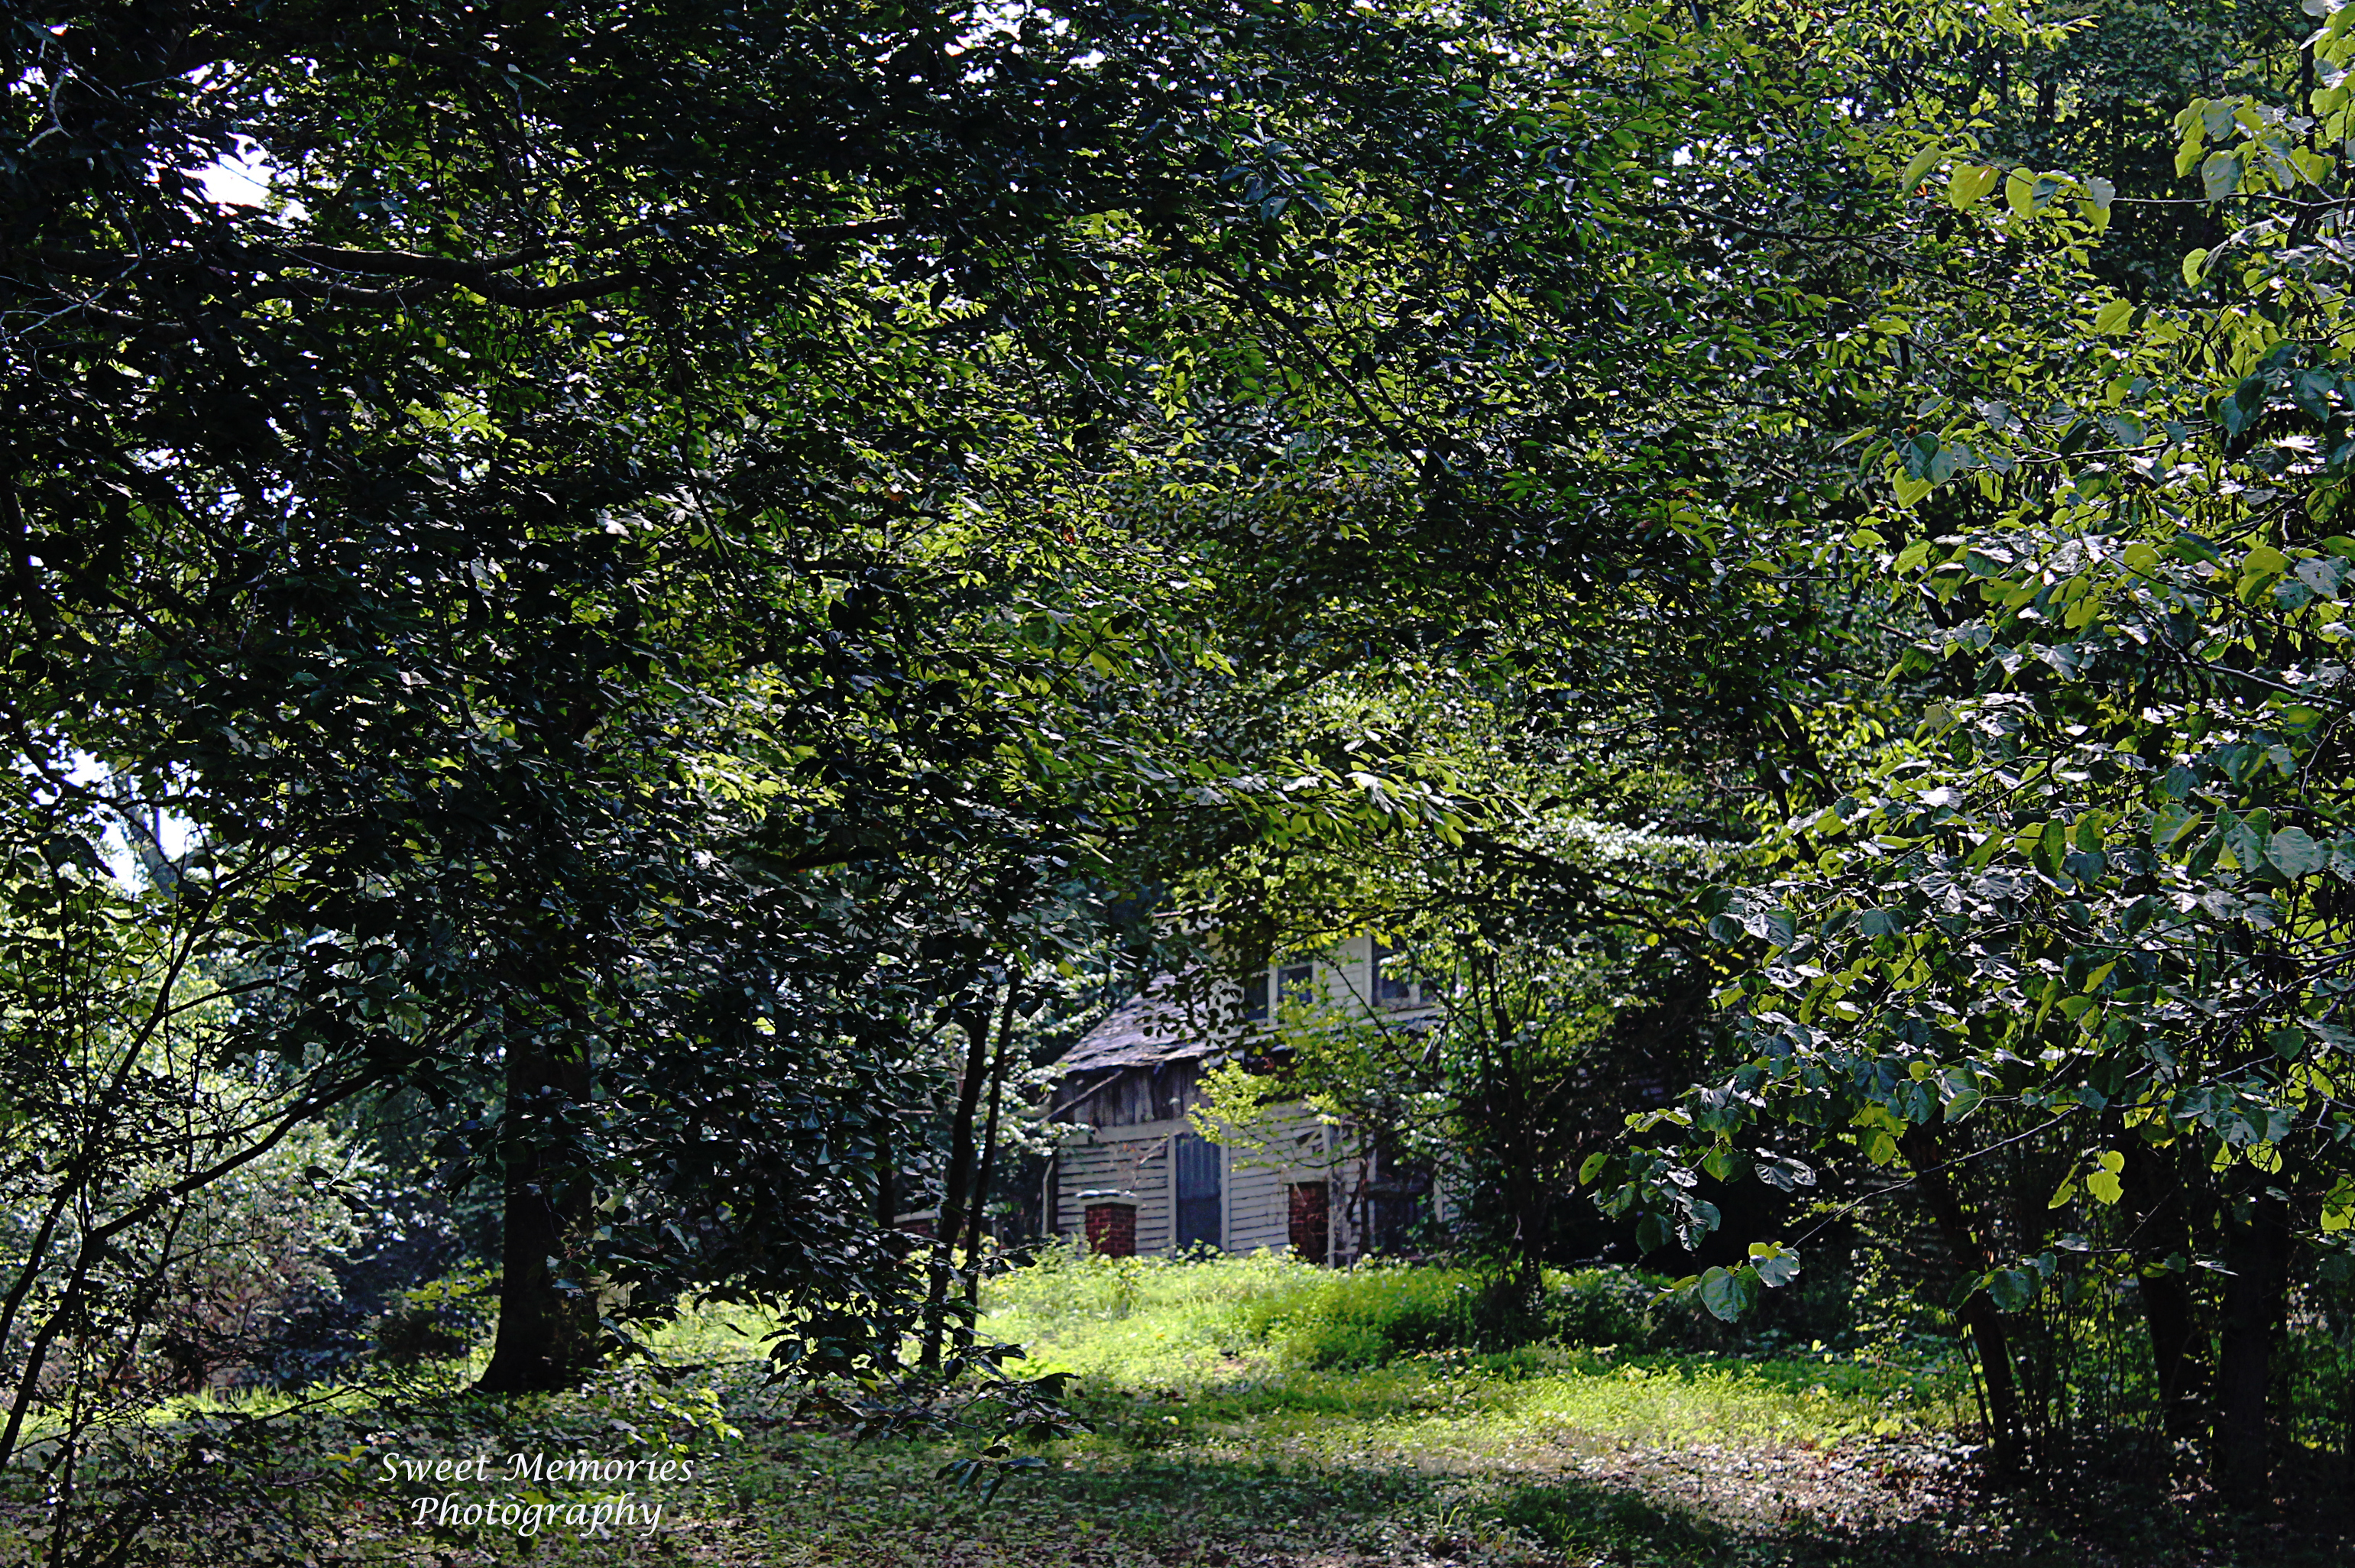 Tennessee carroll county clarksburg - House Green Abandoned Tennessee Macedonia Westtennessee Oncewashome